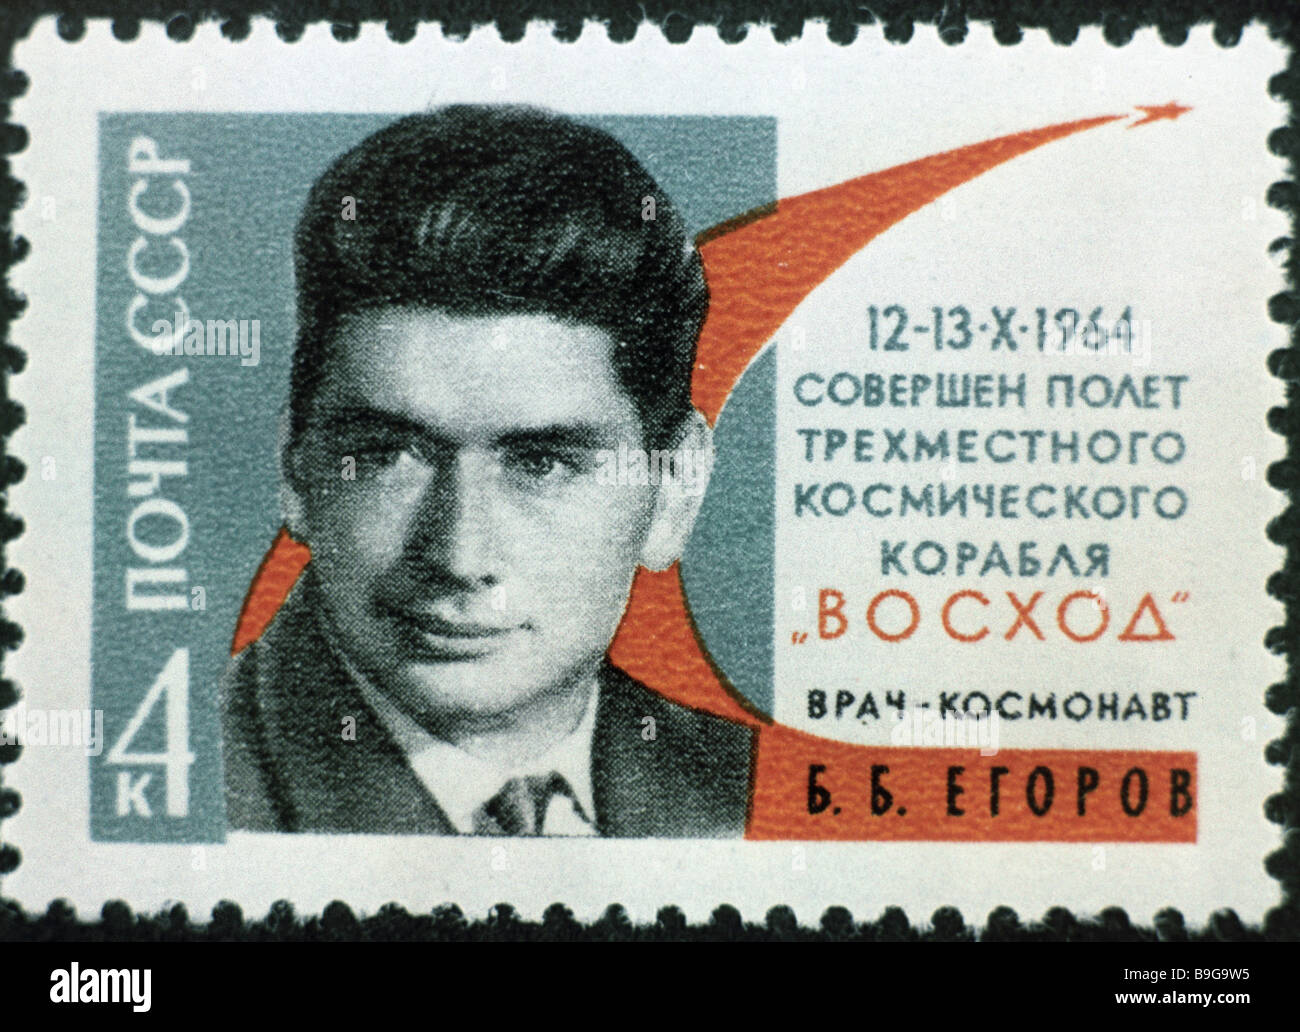 A postal stamp dedicated to cosmonaut Boris Yegorov s flight in a crew of three Voskhod spacecraft October 12 13 - Stock Image